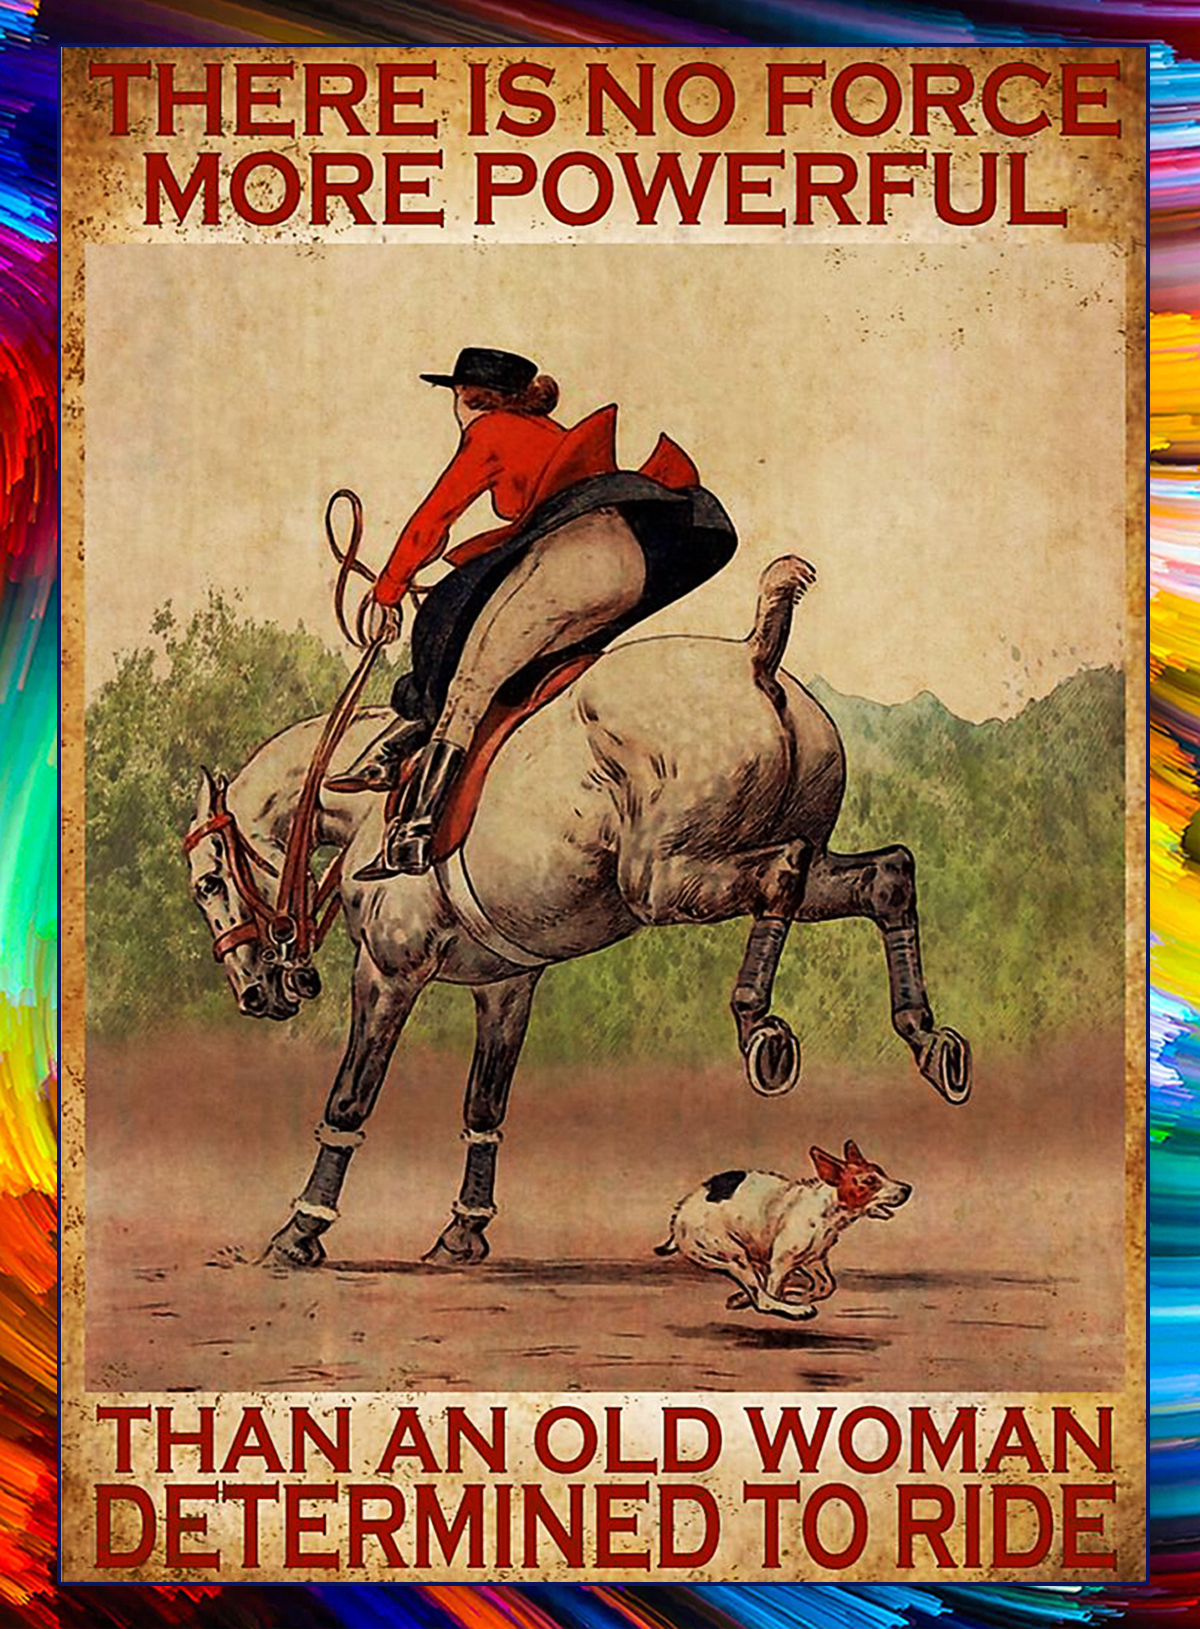 Horse There is no force more powerful than an old woman determined to ride poster - A4